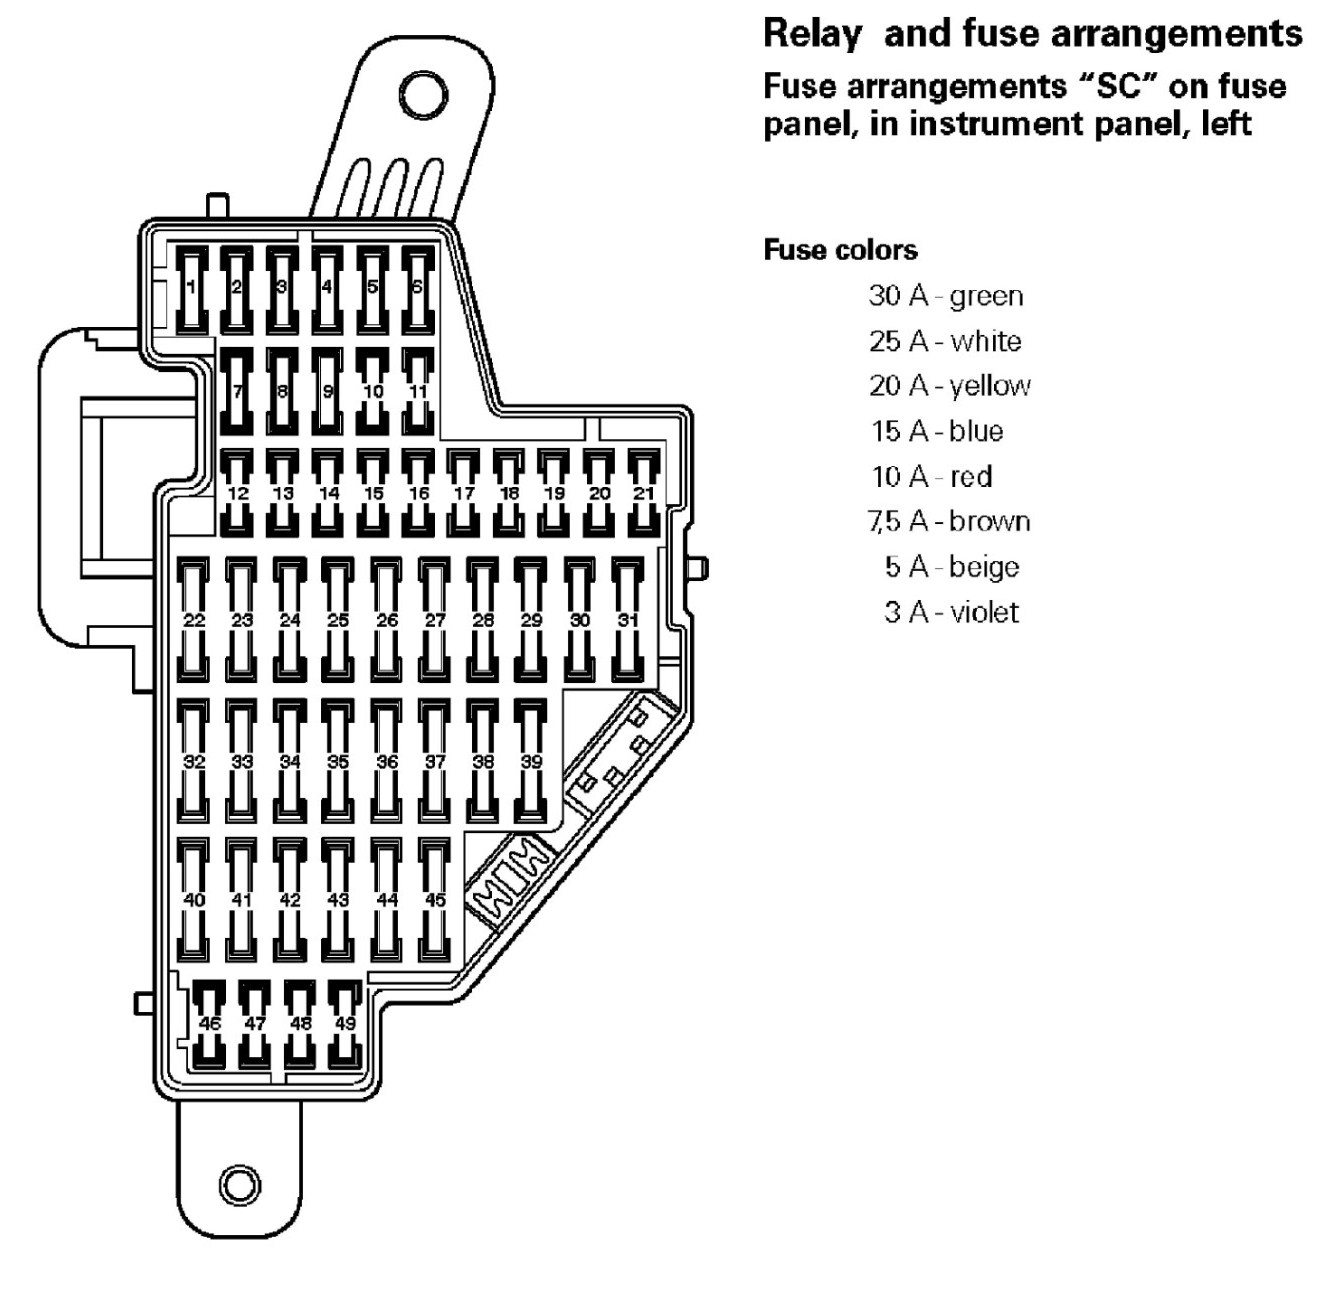 hight resolution of 2009 vw jetta fuse diagram wiring diagram article review 2009 vw jetta engine fuse box diagram 2009 vw jetta fuse box